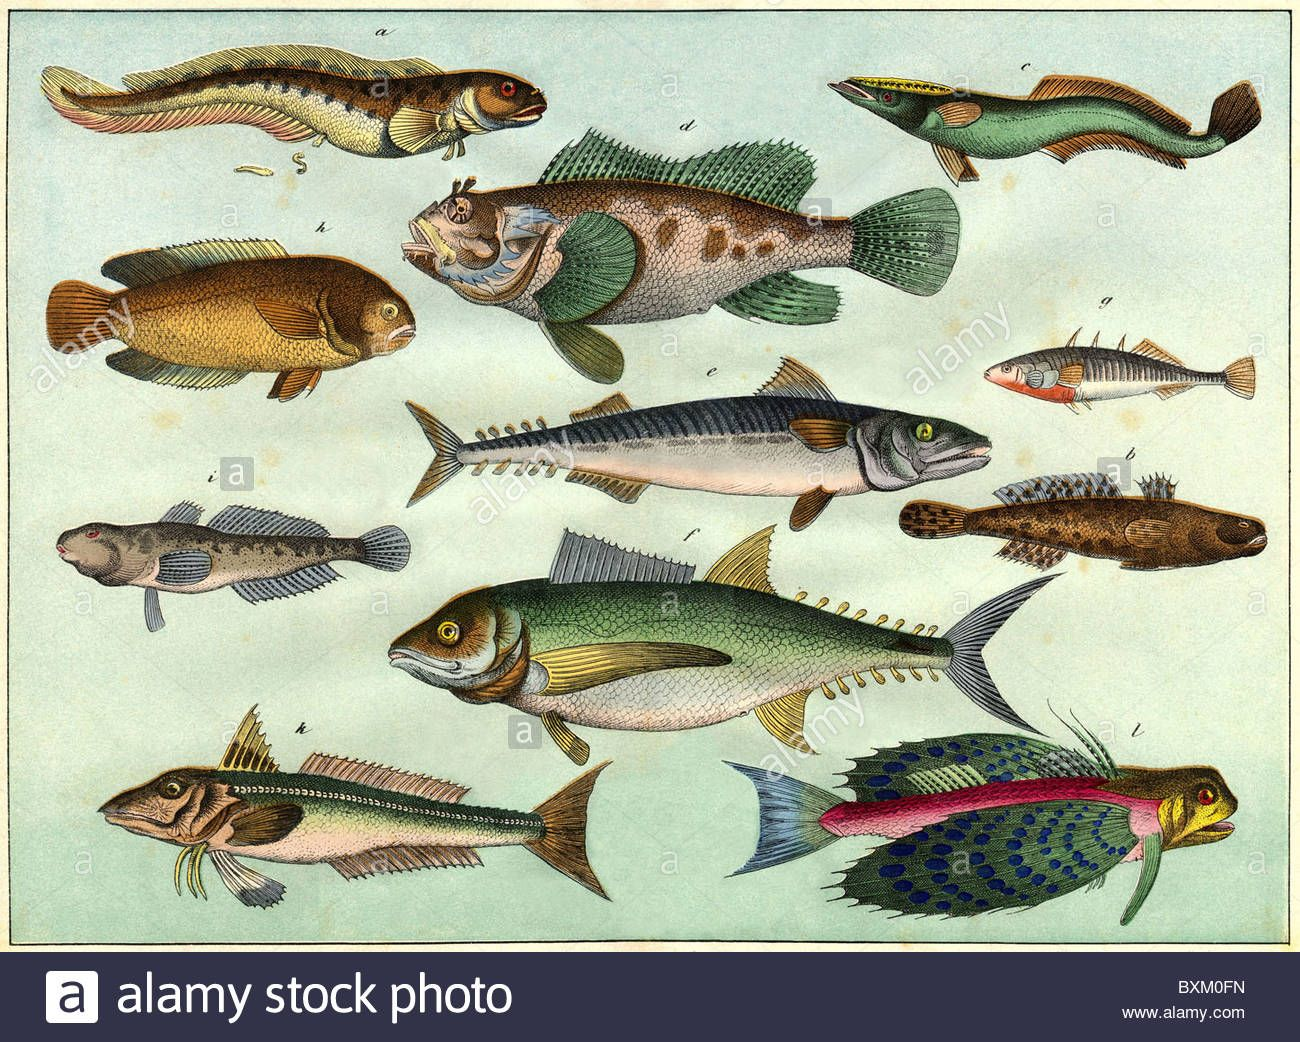 Download This Stock Image Zoology Animals Fish Decorative Lithograph With Different Fish Species Germany 1870 1870s 19t Zoology Animals Different Fish